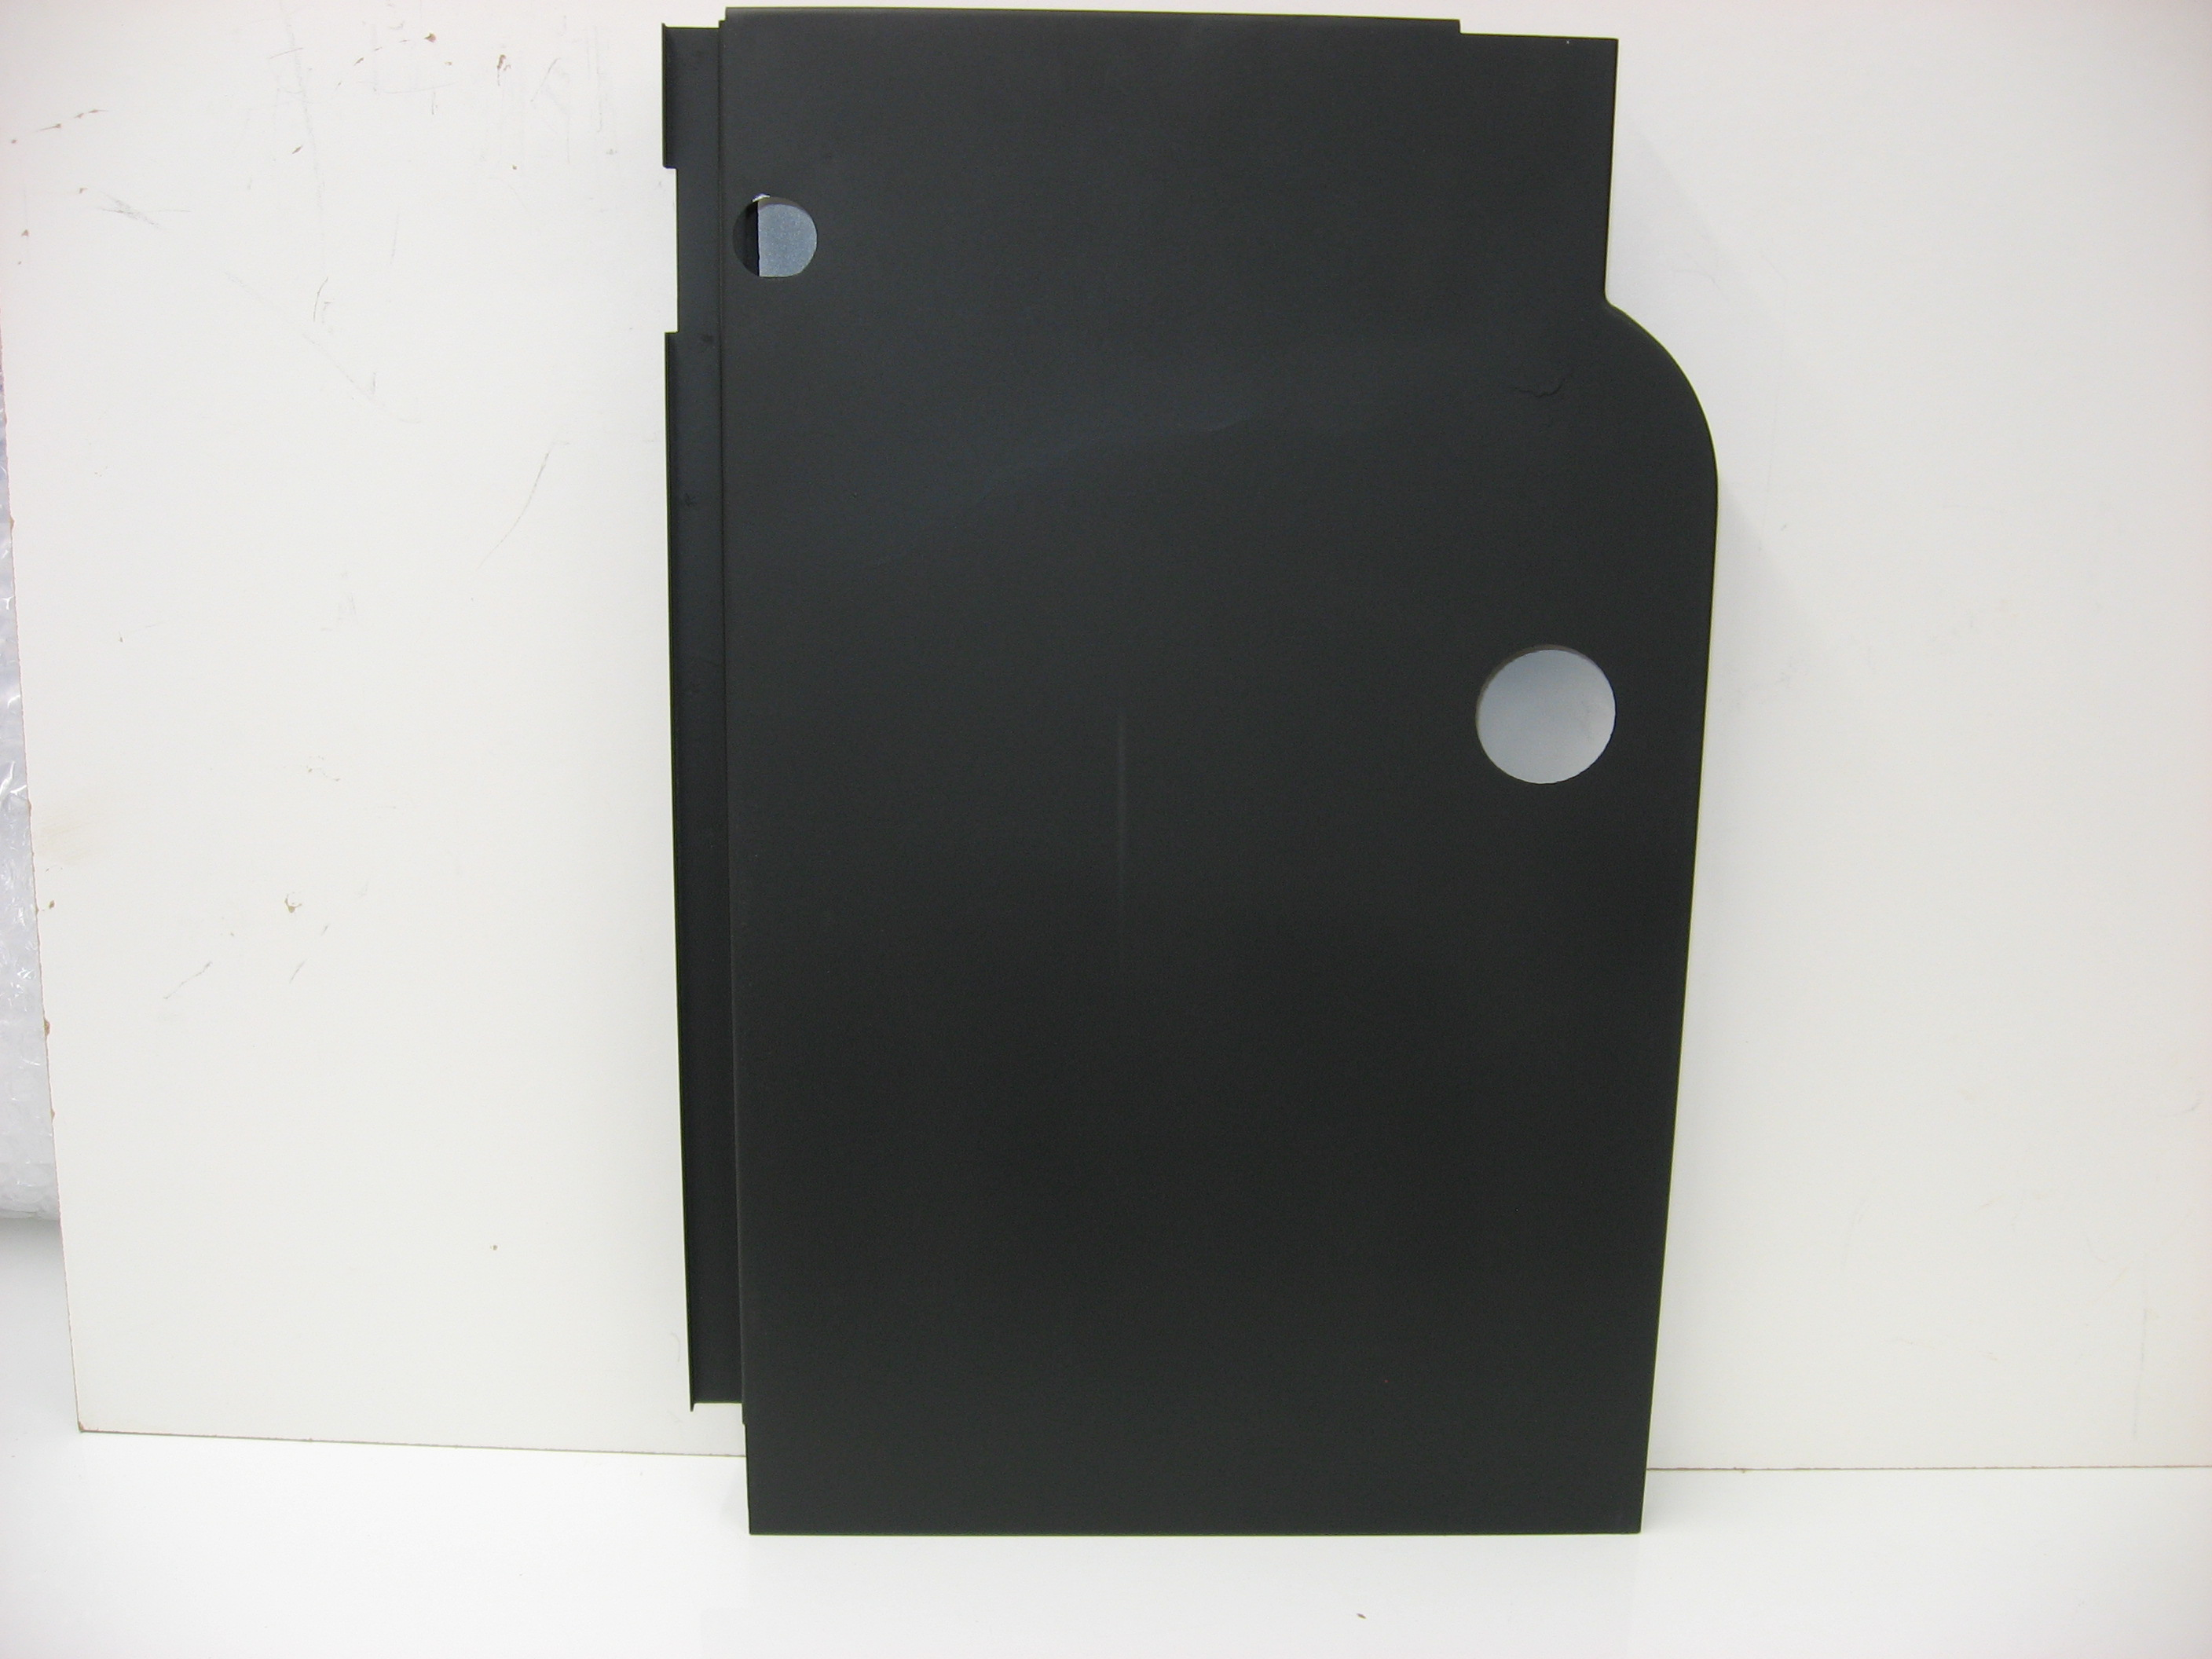 330248 Land Rover Series 2 Rear Quarter Panel RH